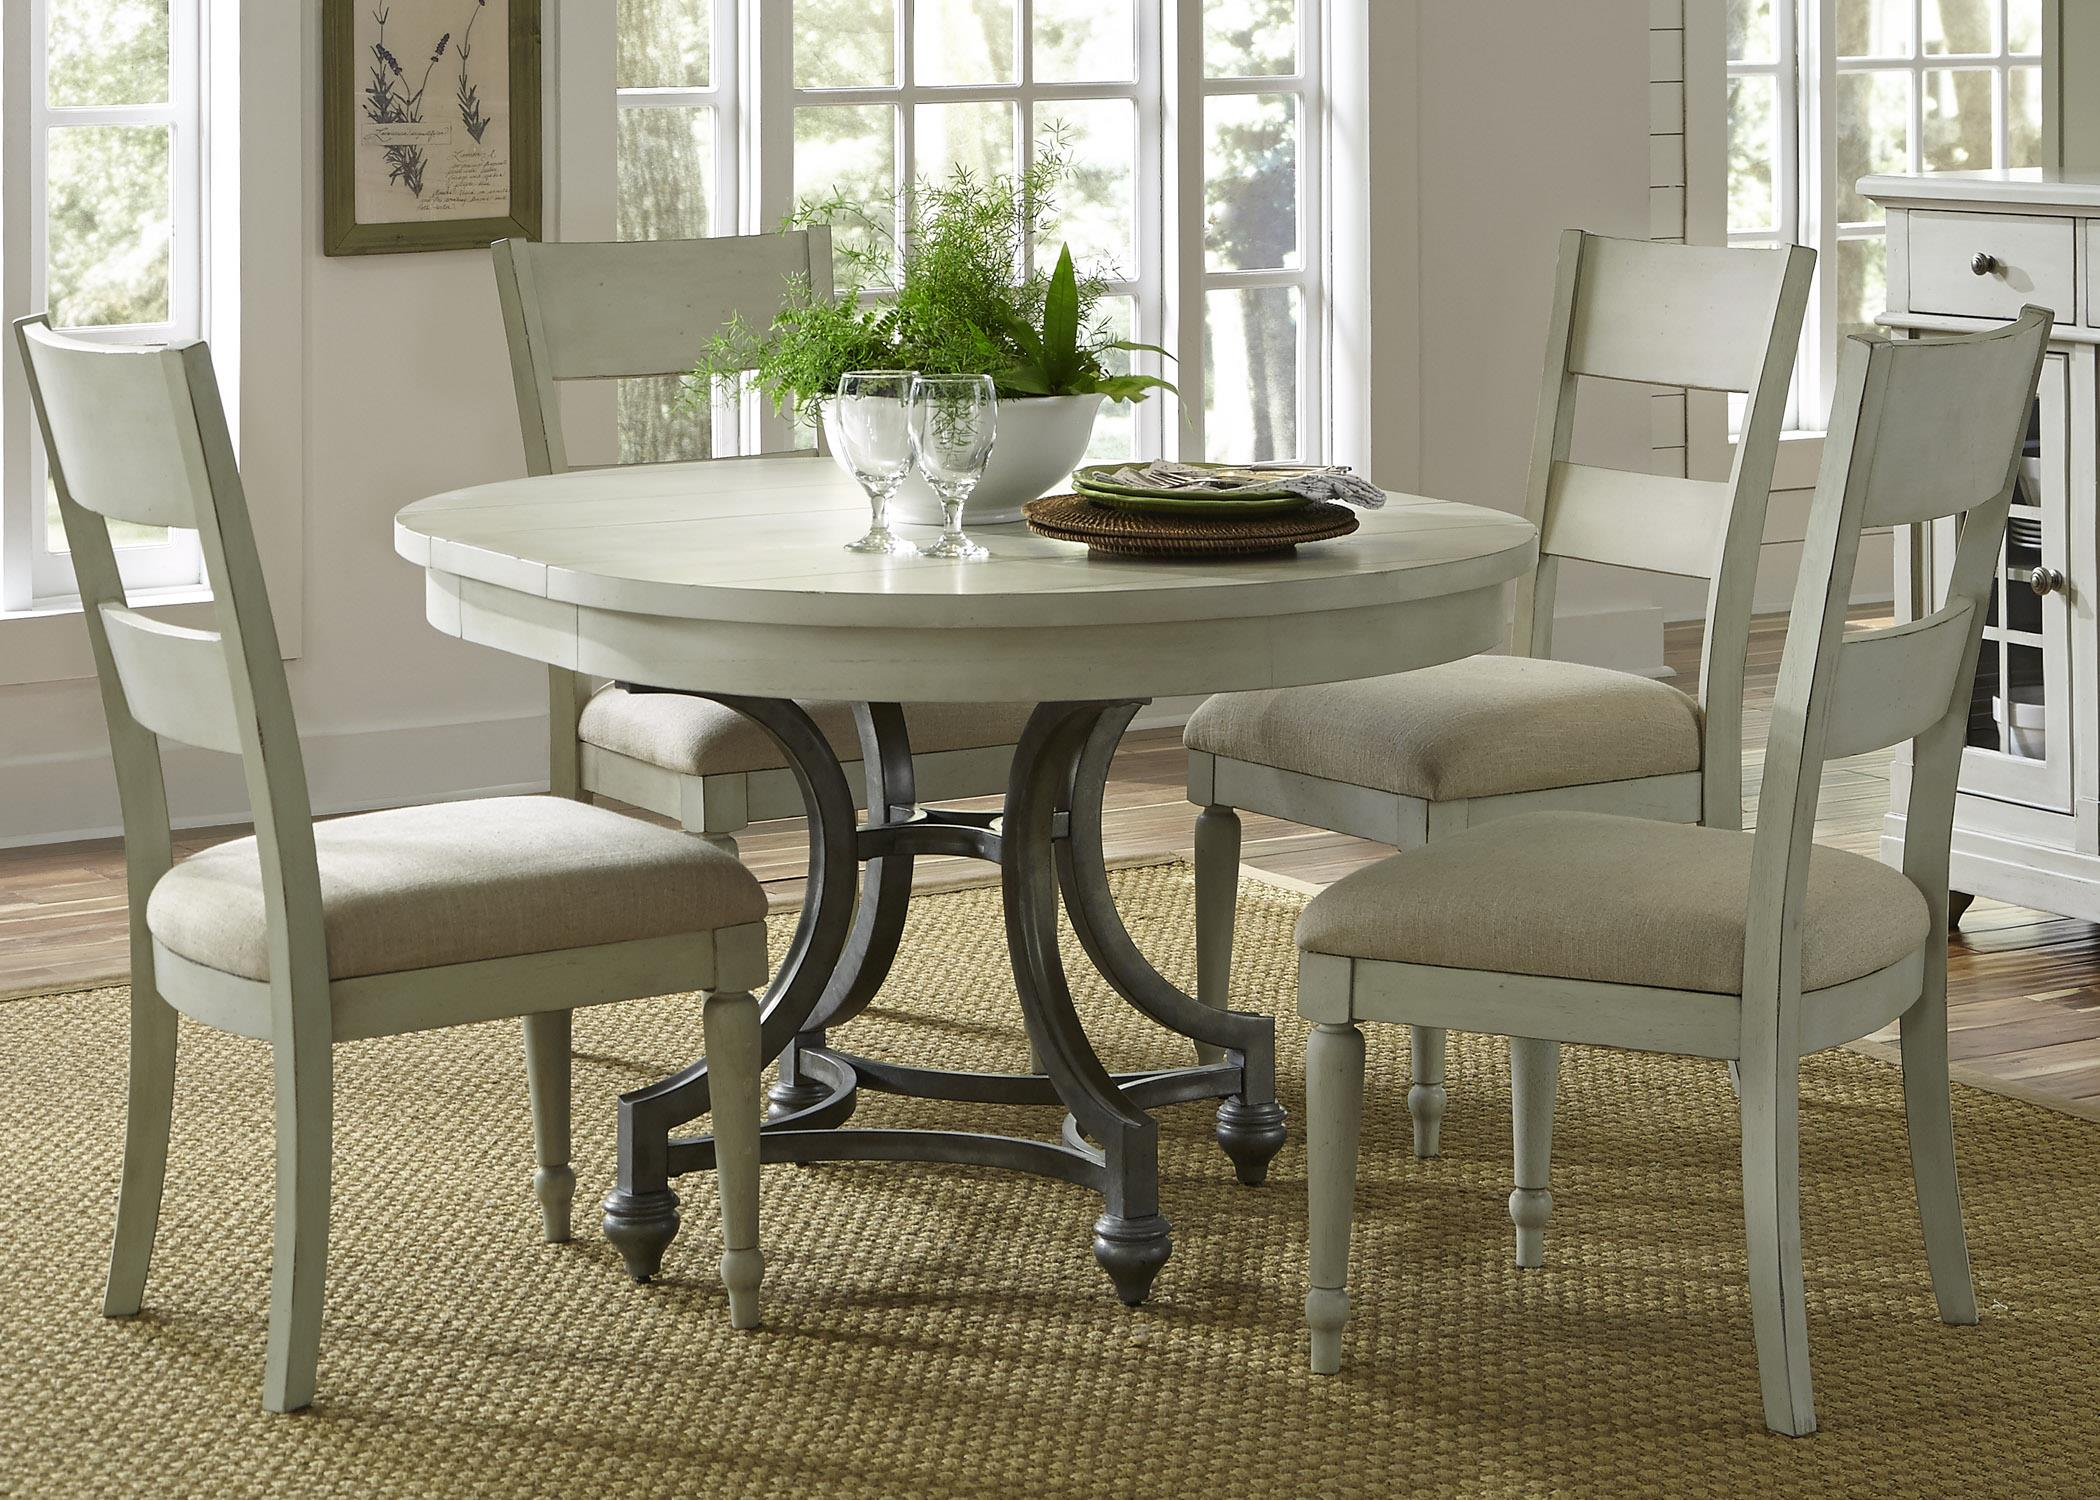 round table and chairs set american girl doll high chair with 4 slat back by liberty furniture wolf